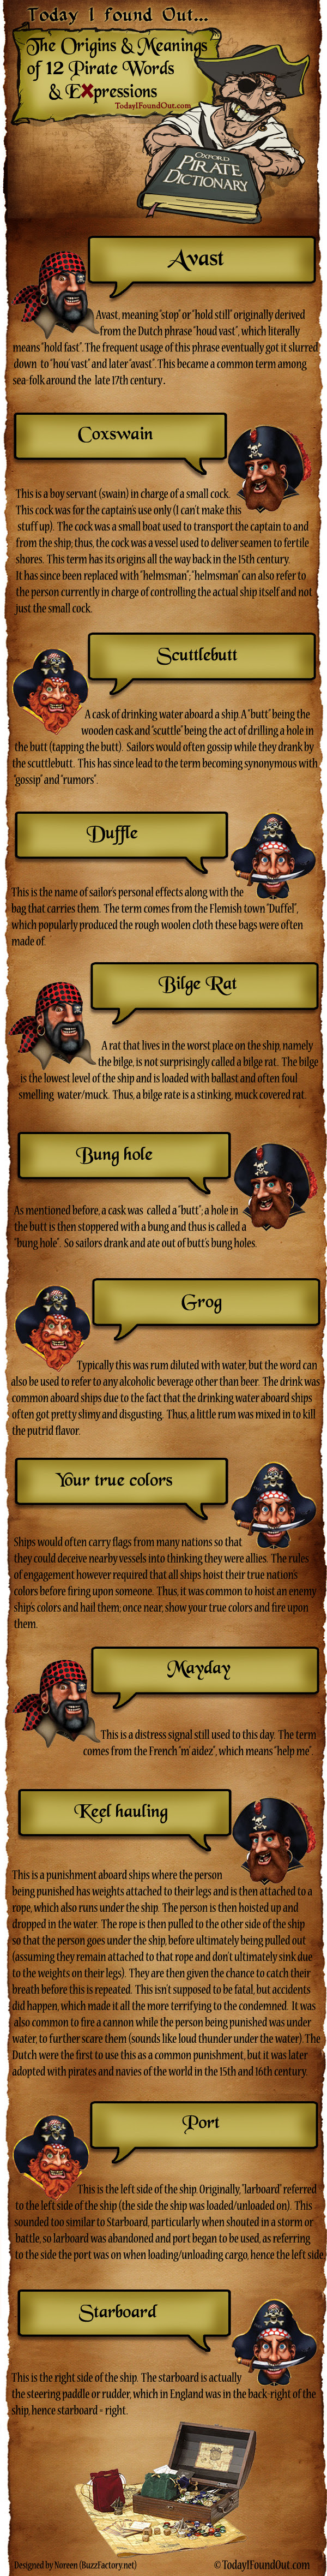 Origins of Pirate Words and Phrases